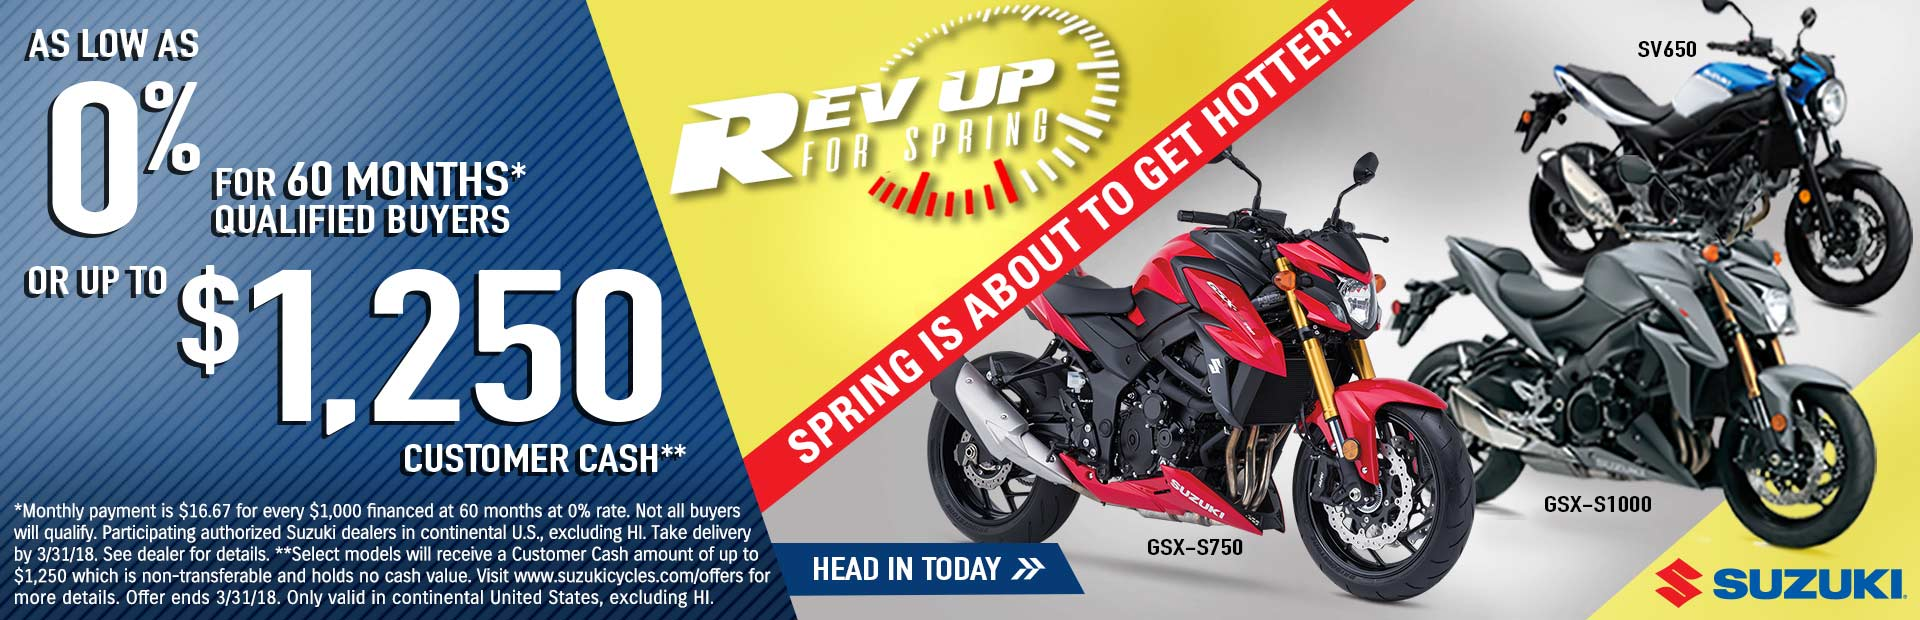 Suzuki: Rev Up for Spring - Standard